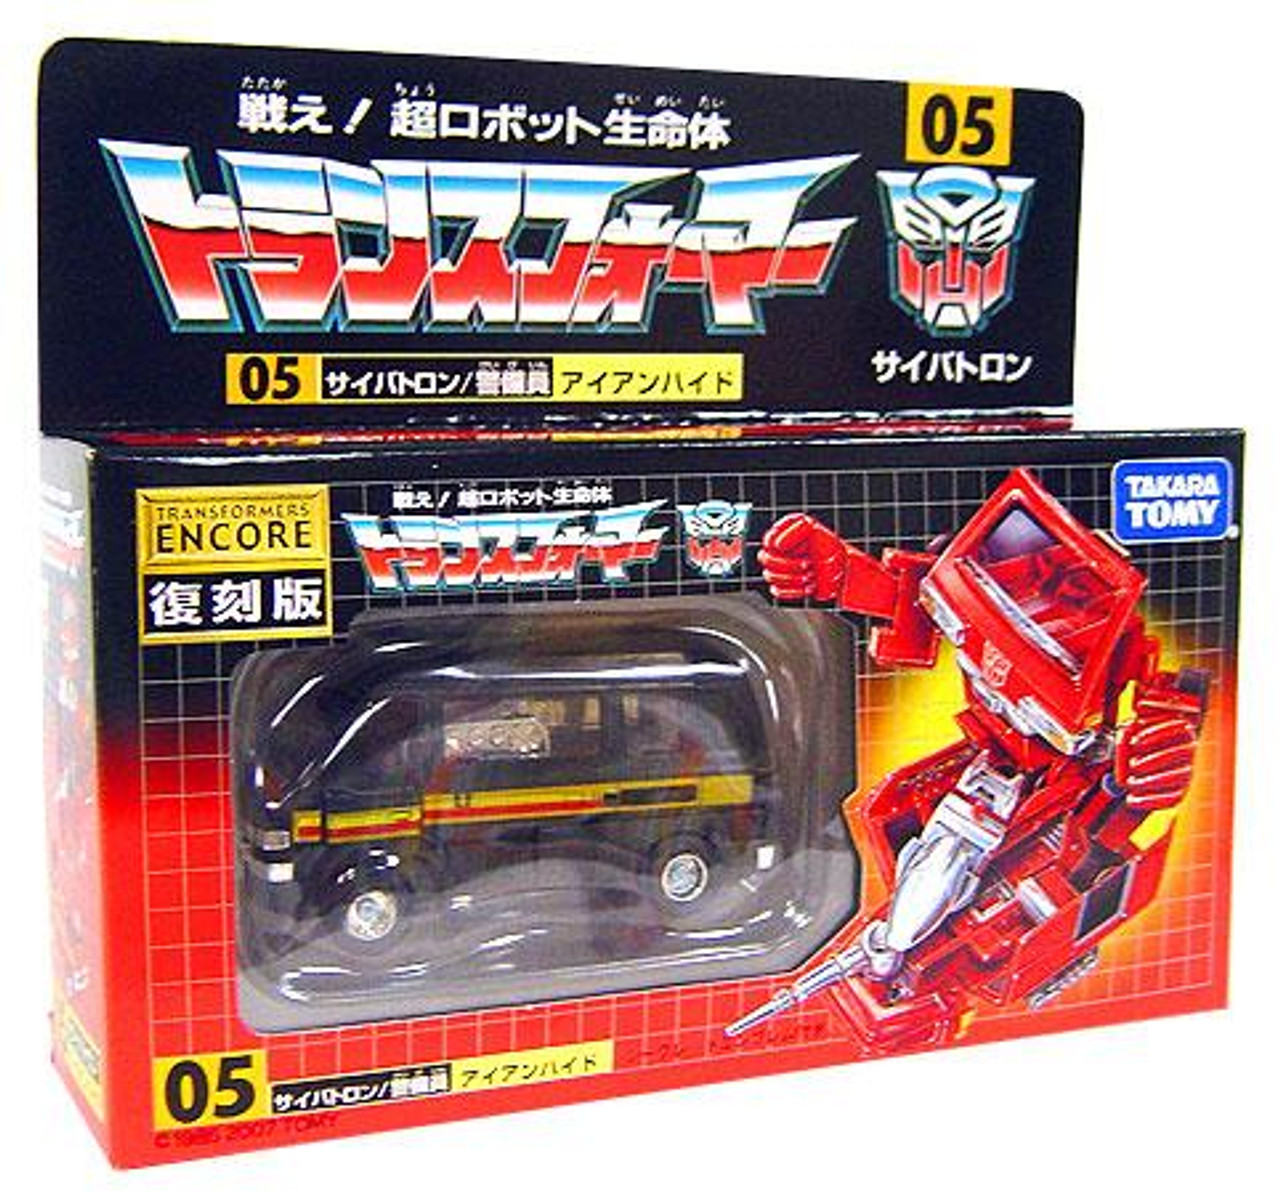 Transformers Japanese Renewal Encore Ironhide Exclusive Action Figure #05 [Movie Colors]